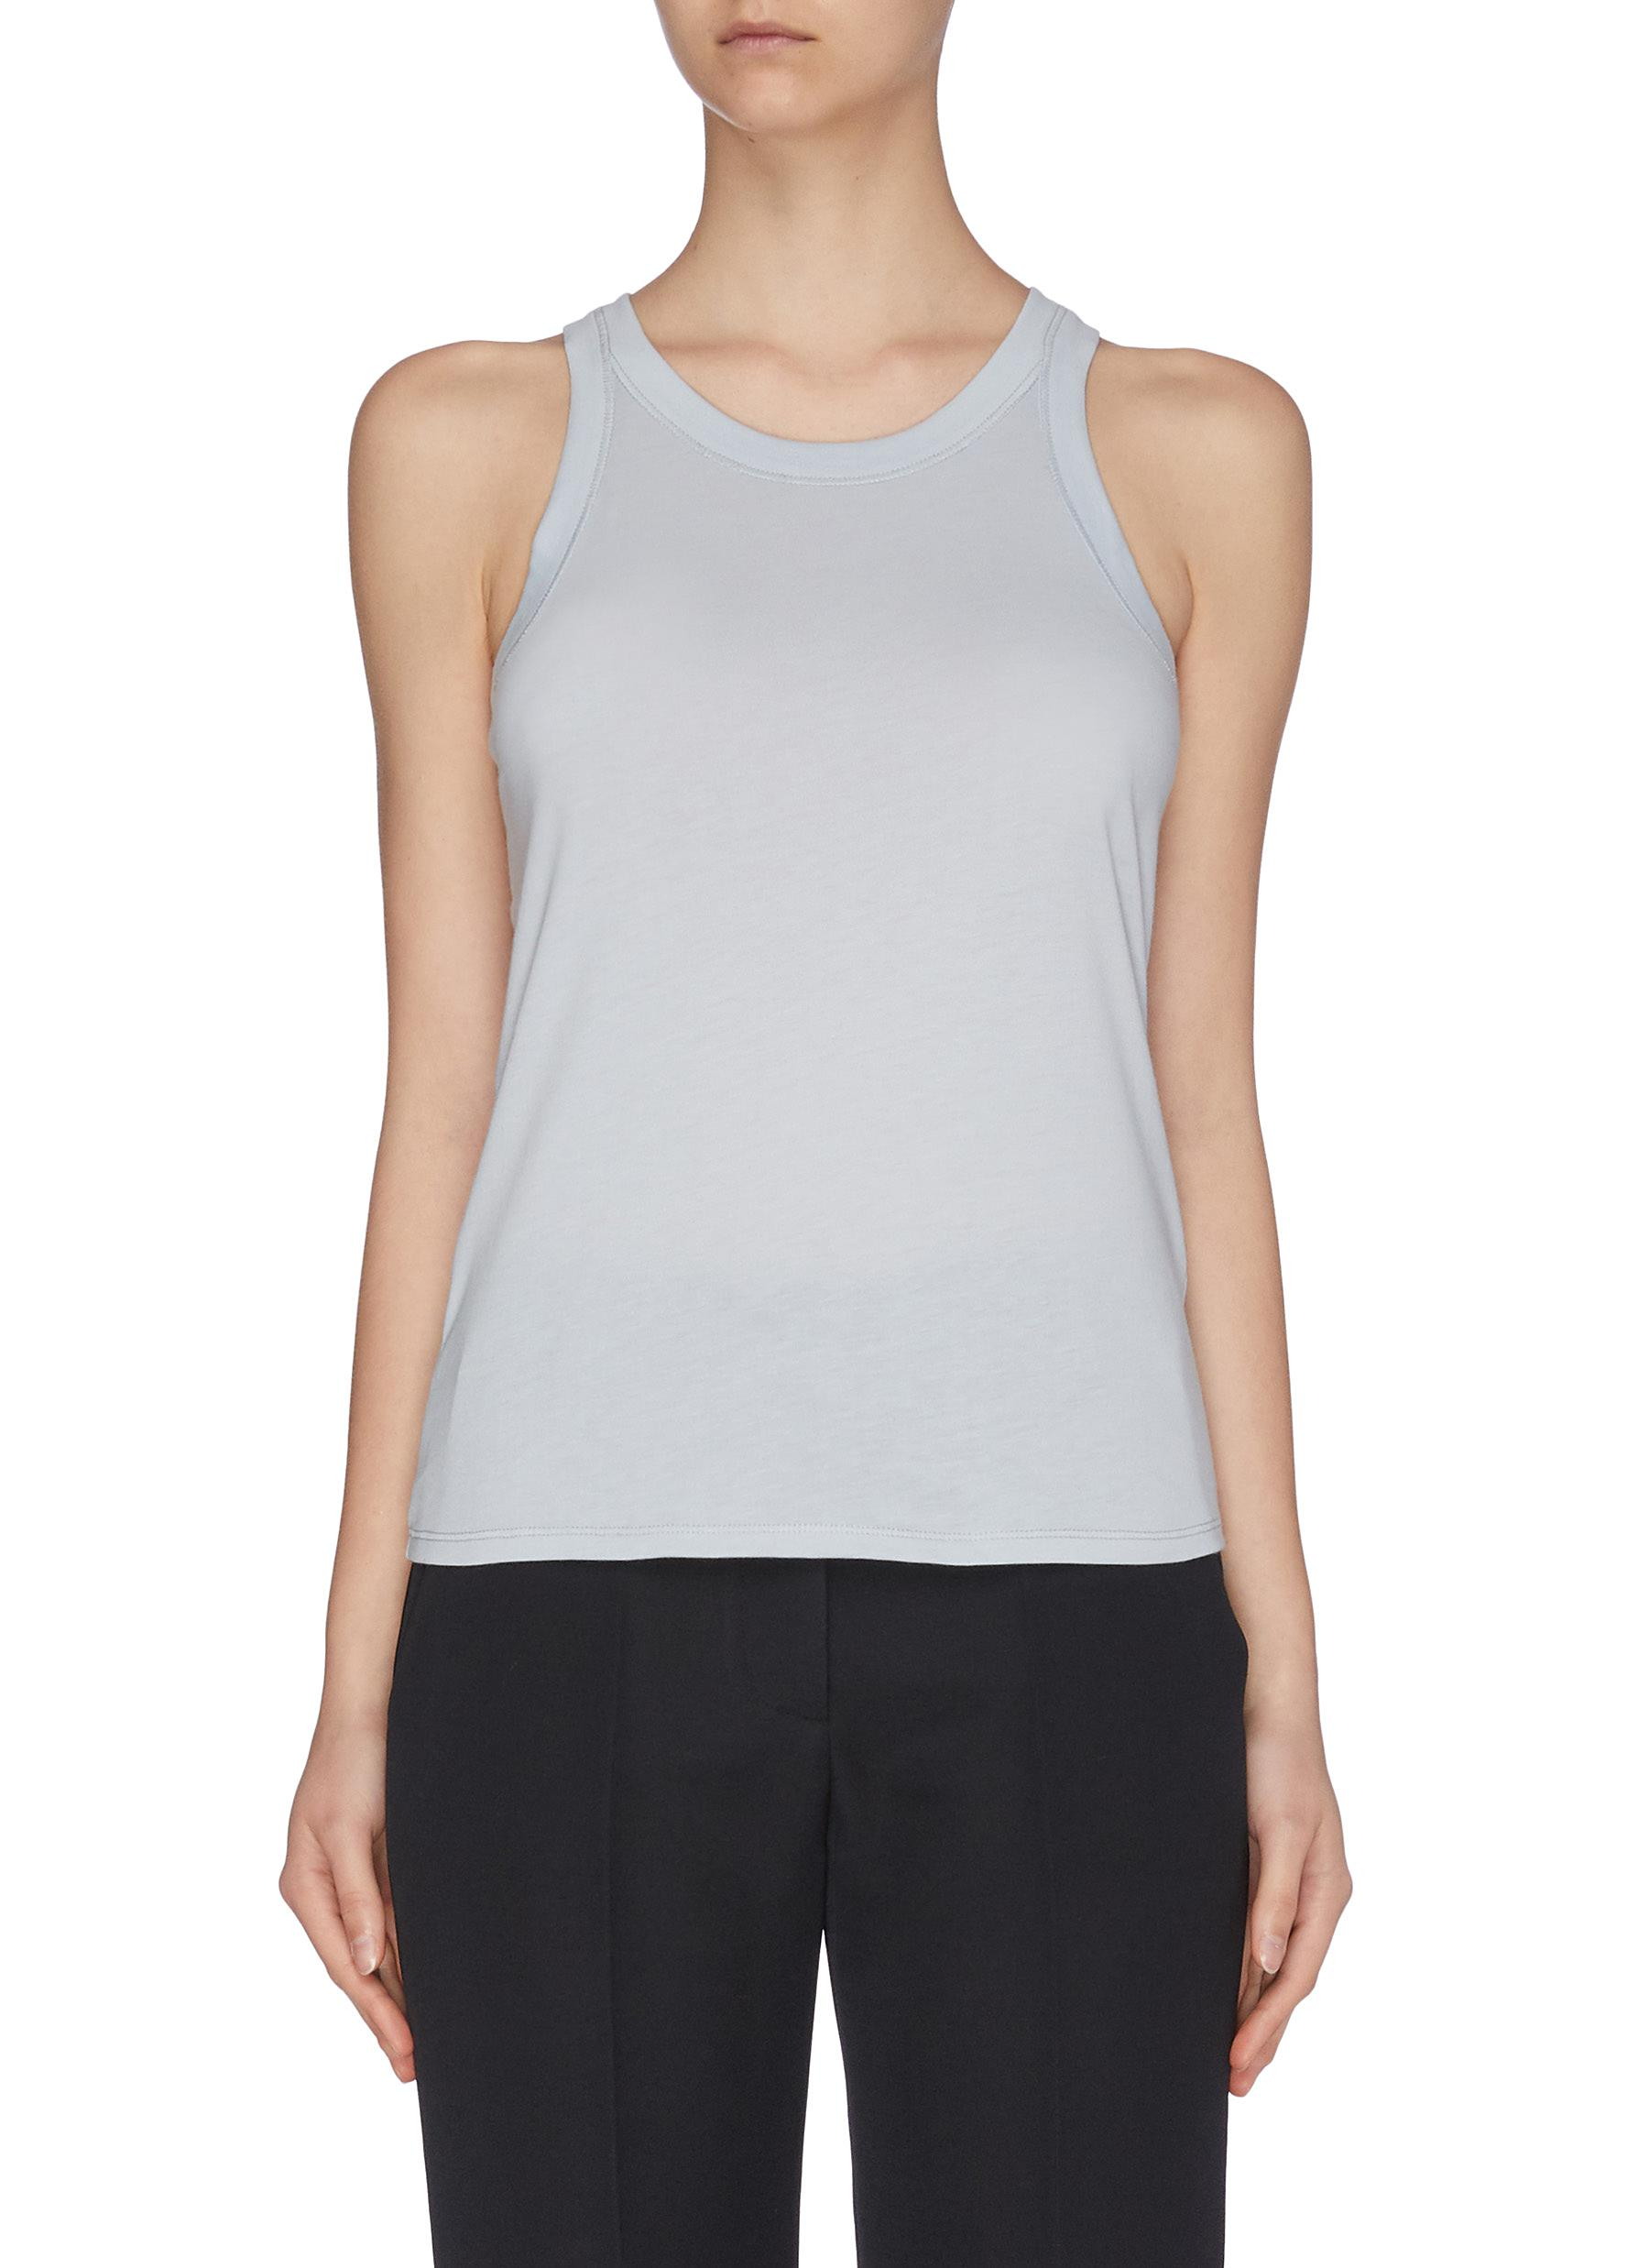 Buy The Row Tops 'Frankie' tank top